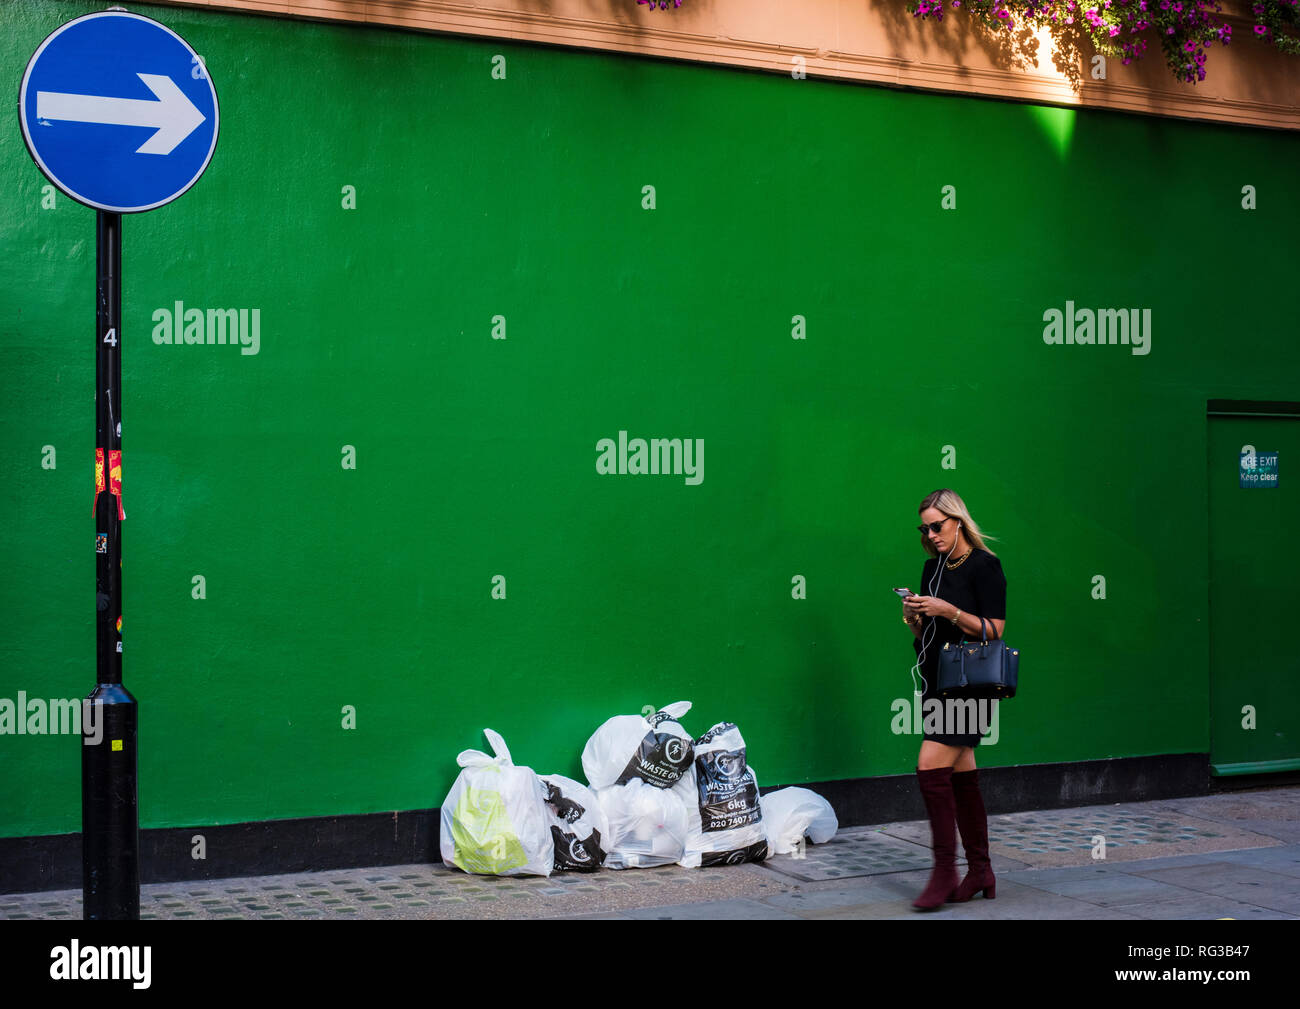 Young woman walking past green painted wall, carrying handbag, using smartphone, rubbish bags in front of wall, Central London, England, UK - Stock Image